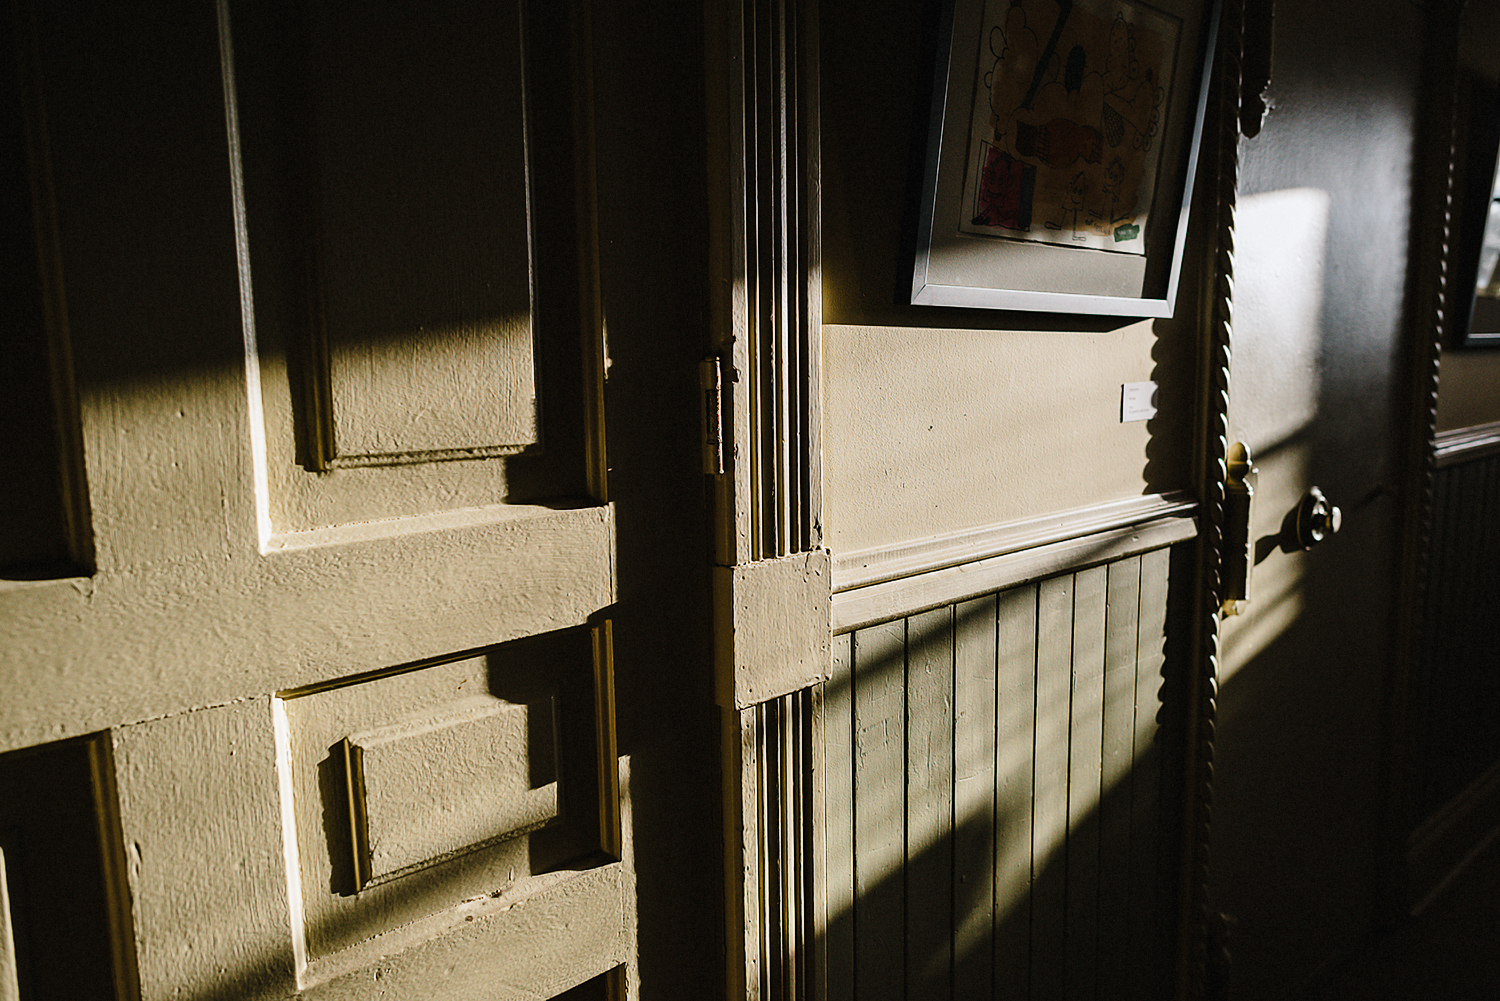 Best-Moody-Documentary-Wedding-Photography-Photojournalism-Vintage-Small-Town-Chapel-Wedding-Toronto-Ontario_Reception-Venue-Old-Town-Hall-Sunlight-detail.jpg